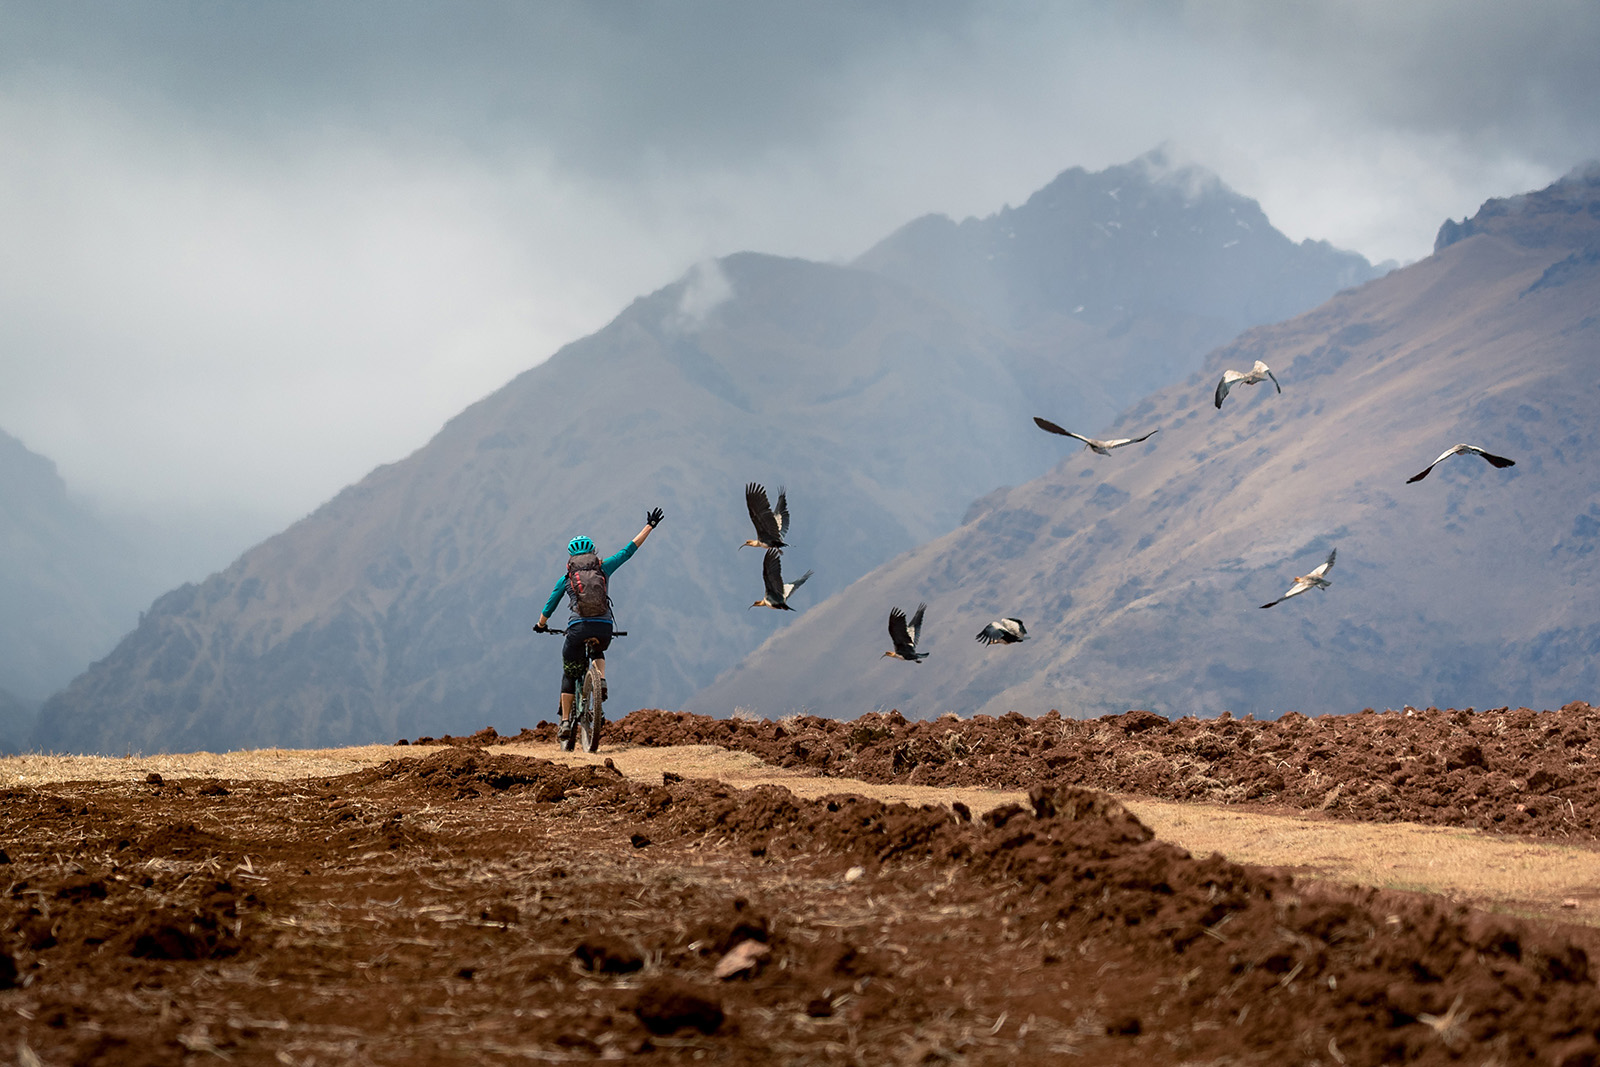 Mountain Biking in Peru